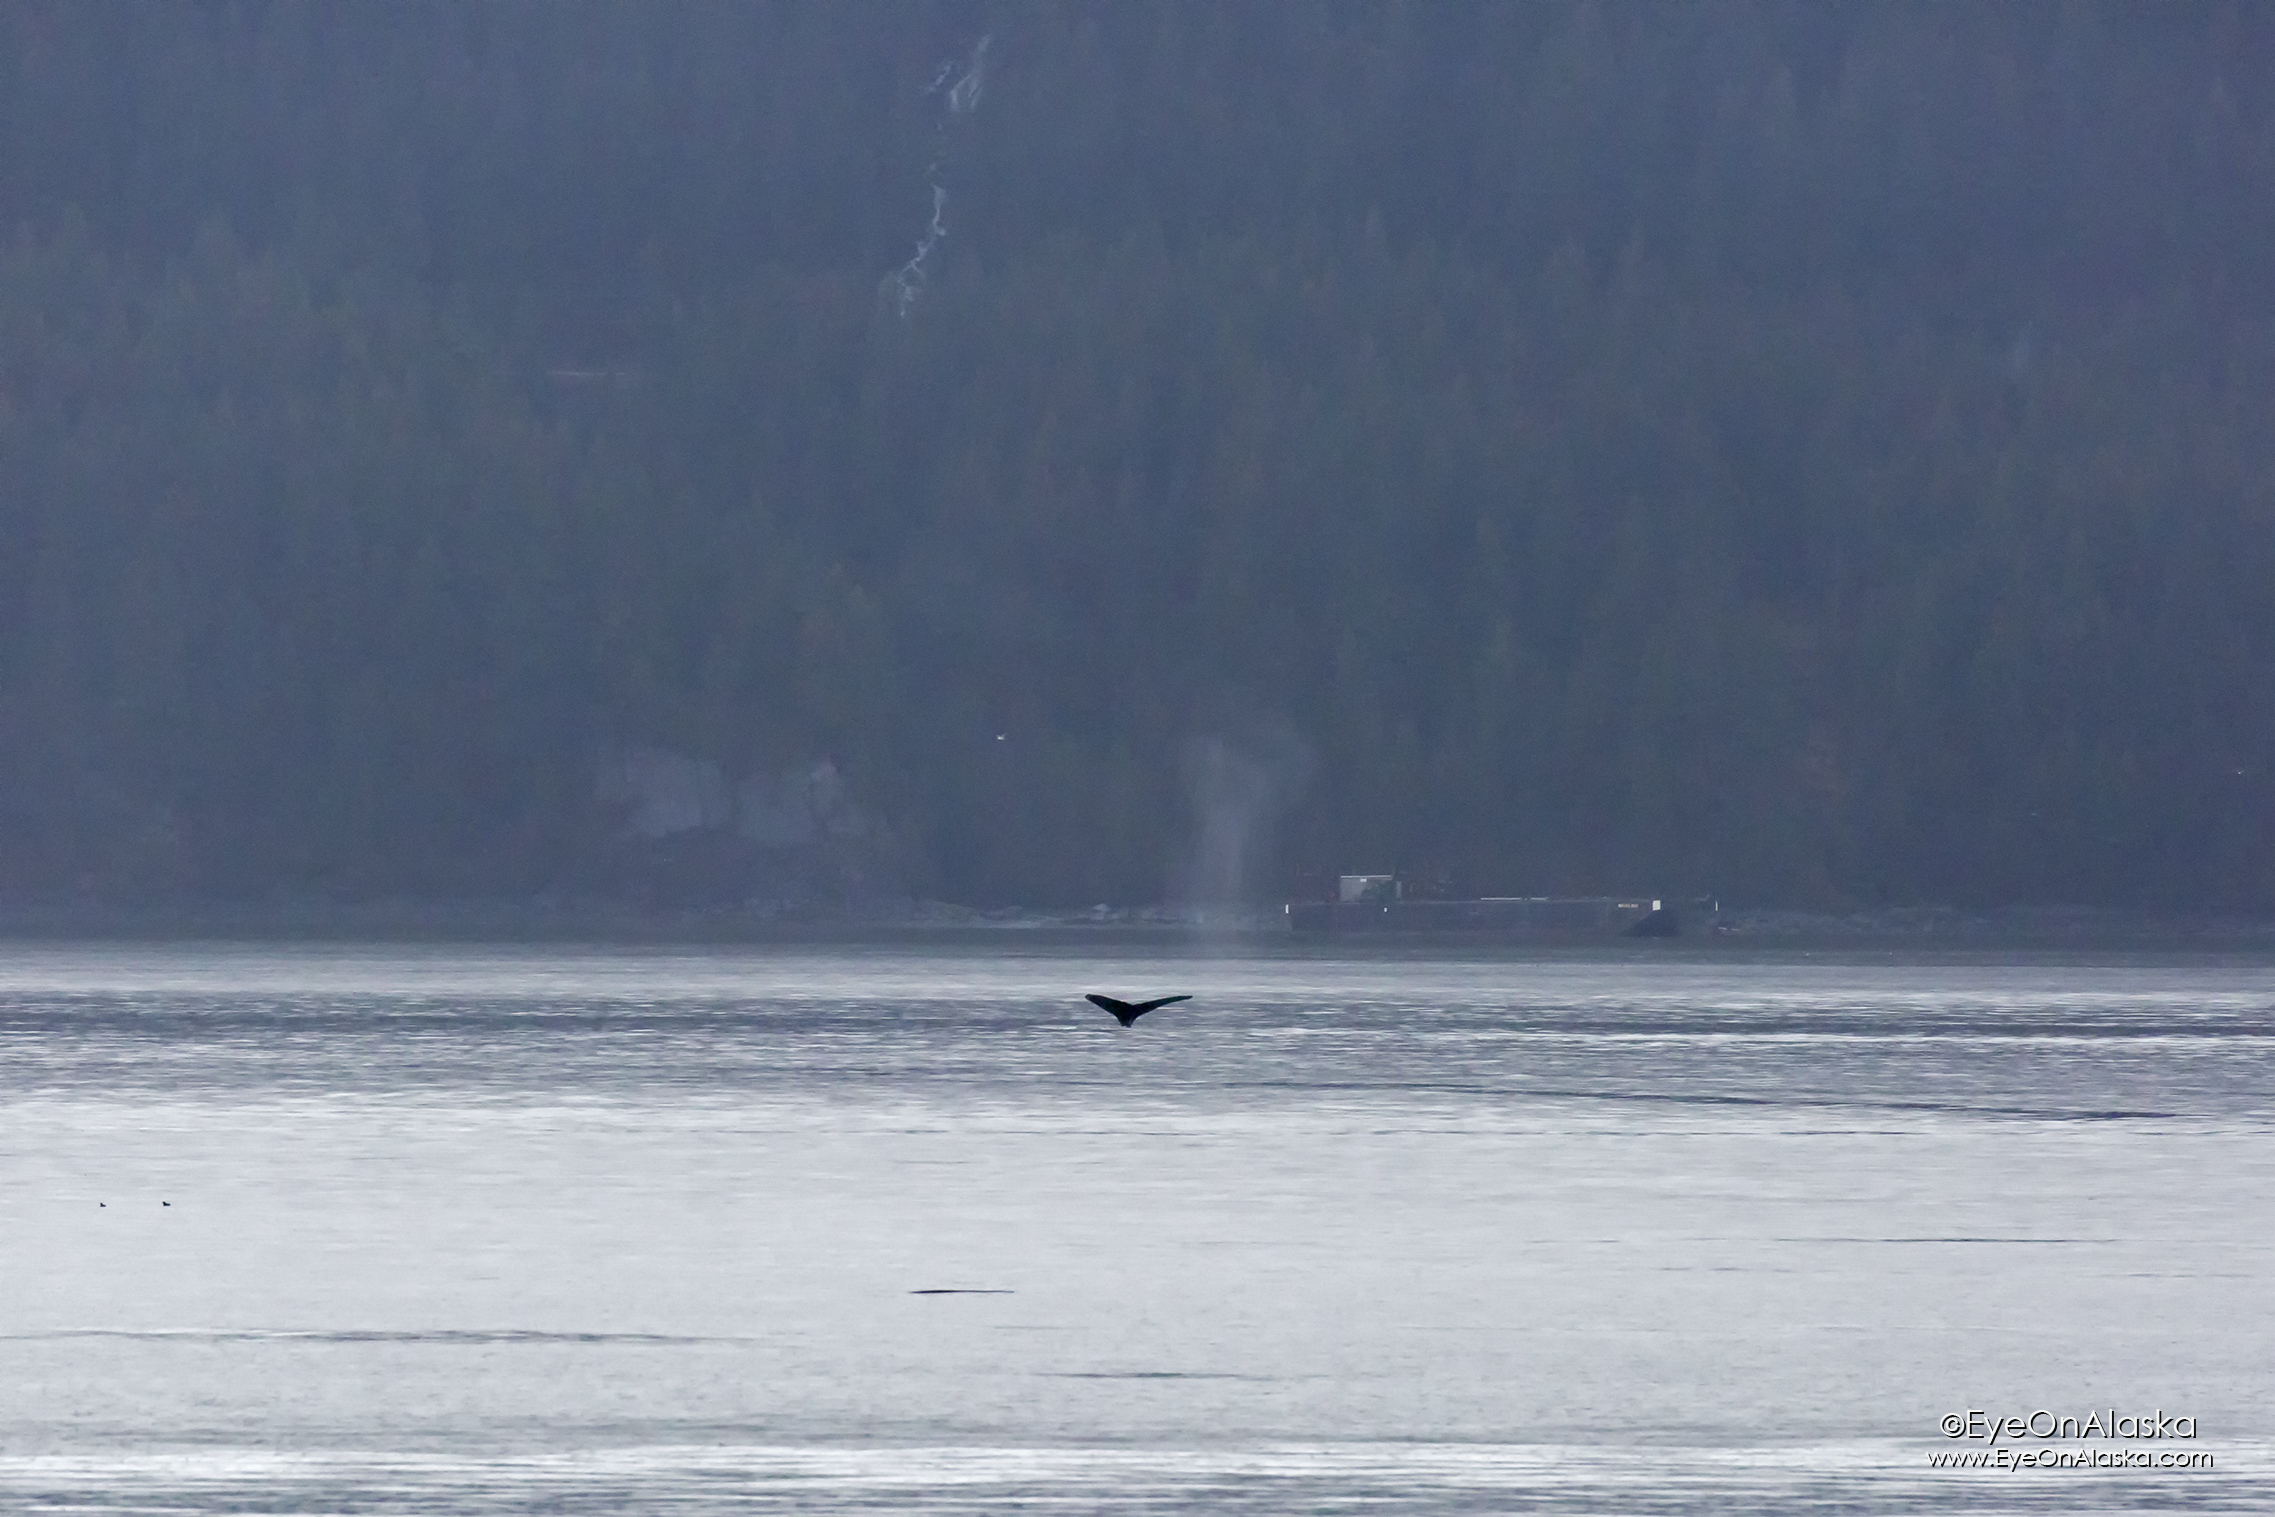 First whale sighting of the year.